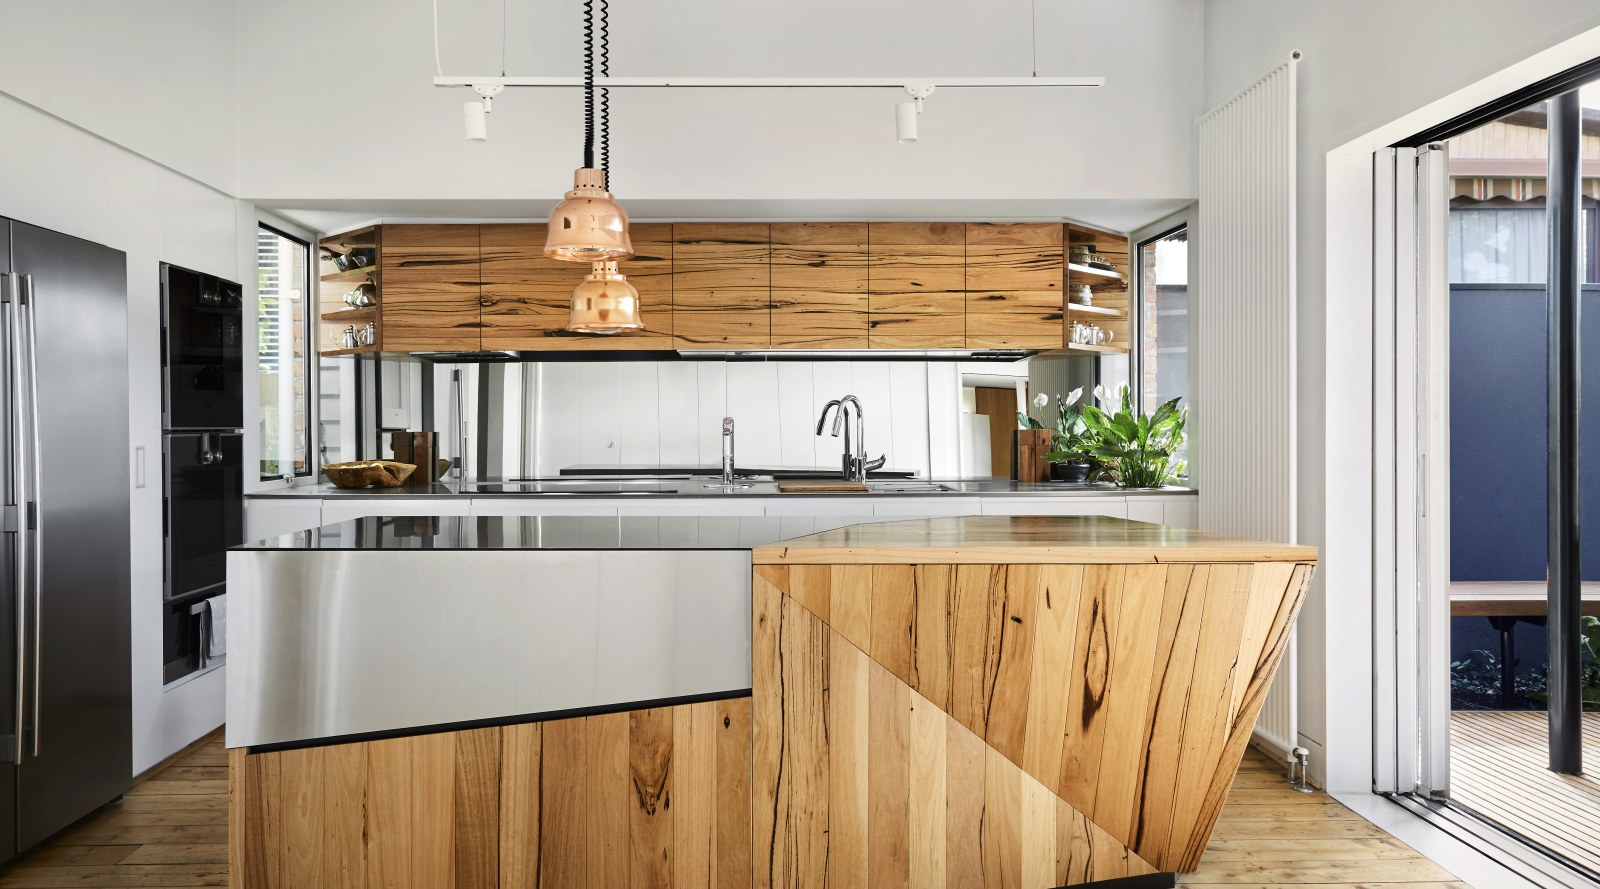 Warm Meets Semi Industrial In This Kitchen With A… | Trends With Regard To Austin Industrial Accent Mirrors (View 29 of 30)